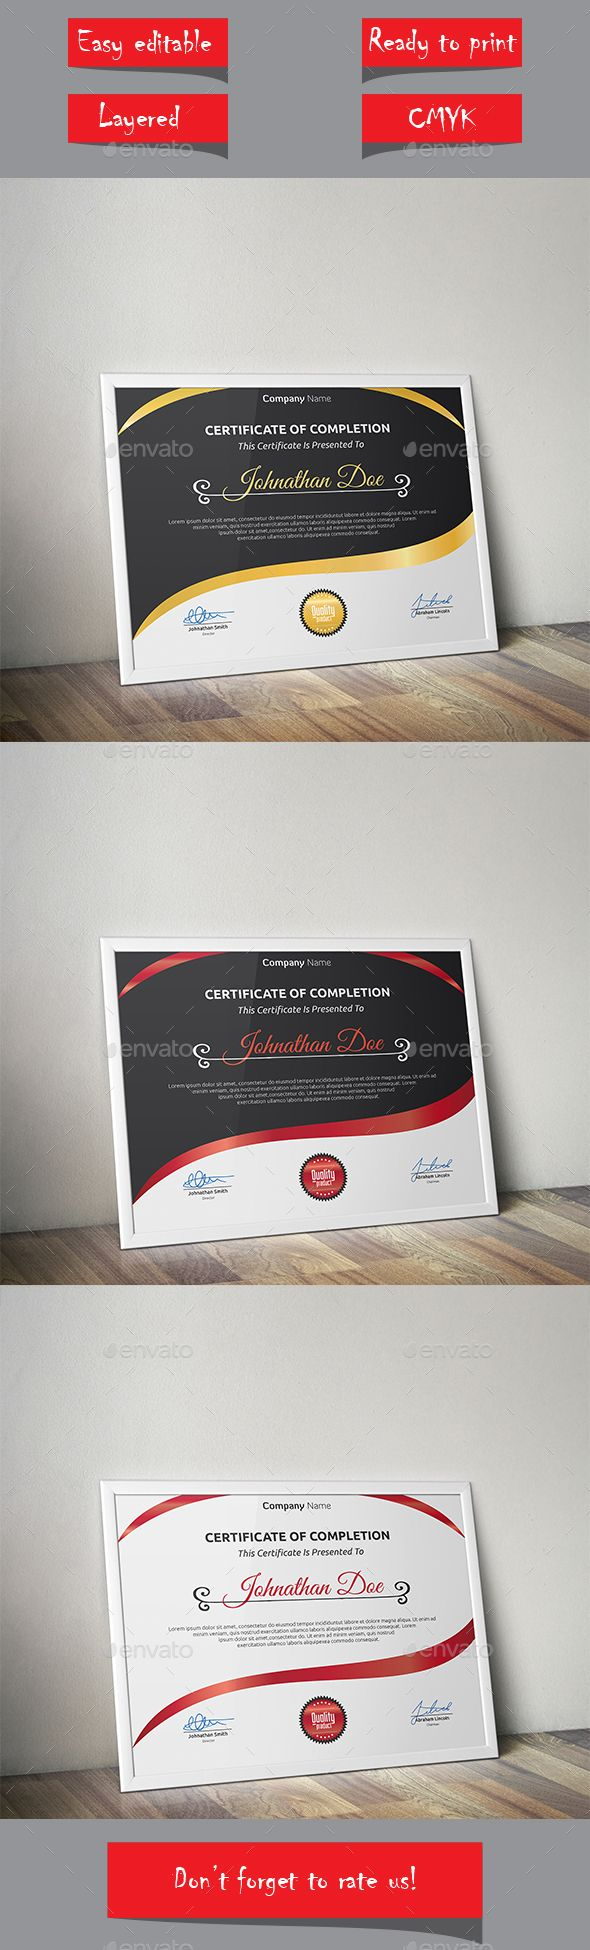 Certificate Template Vector EPS. Download here: http://graphicriver.net/item/certificate/13575430?ref=ksioks